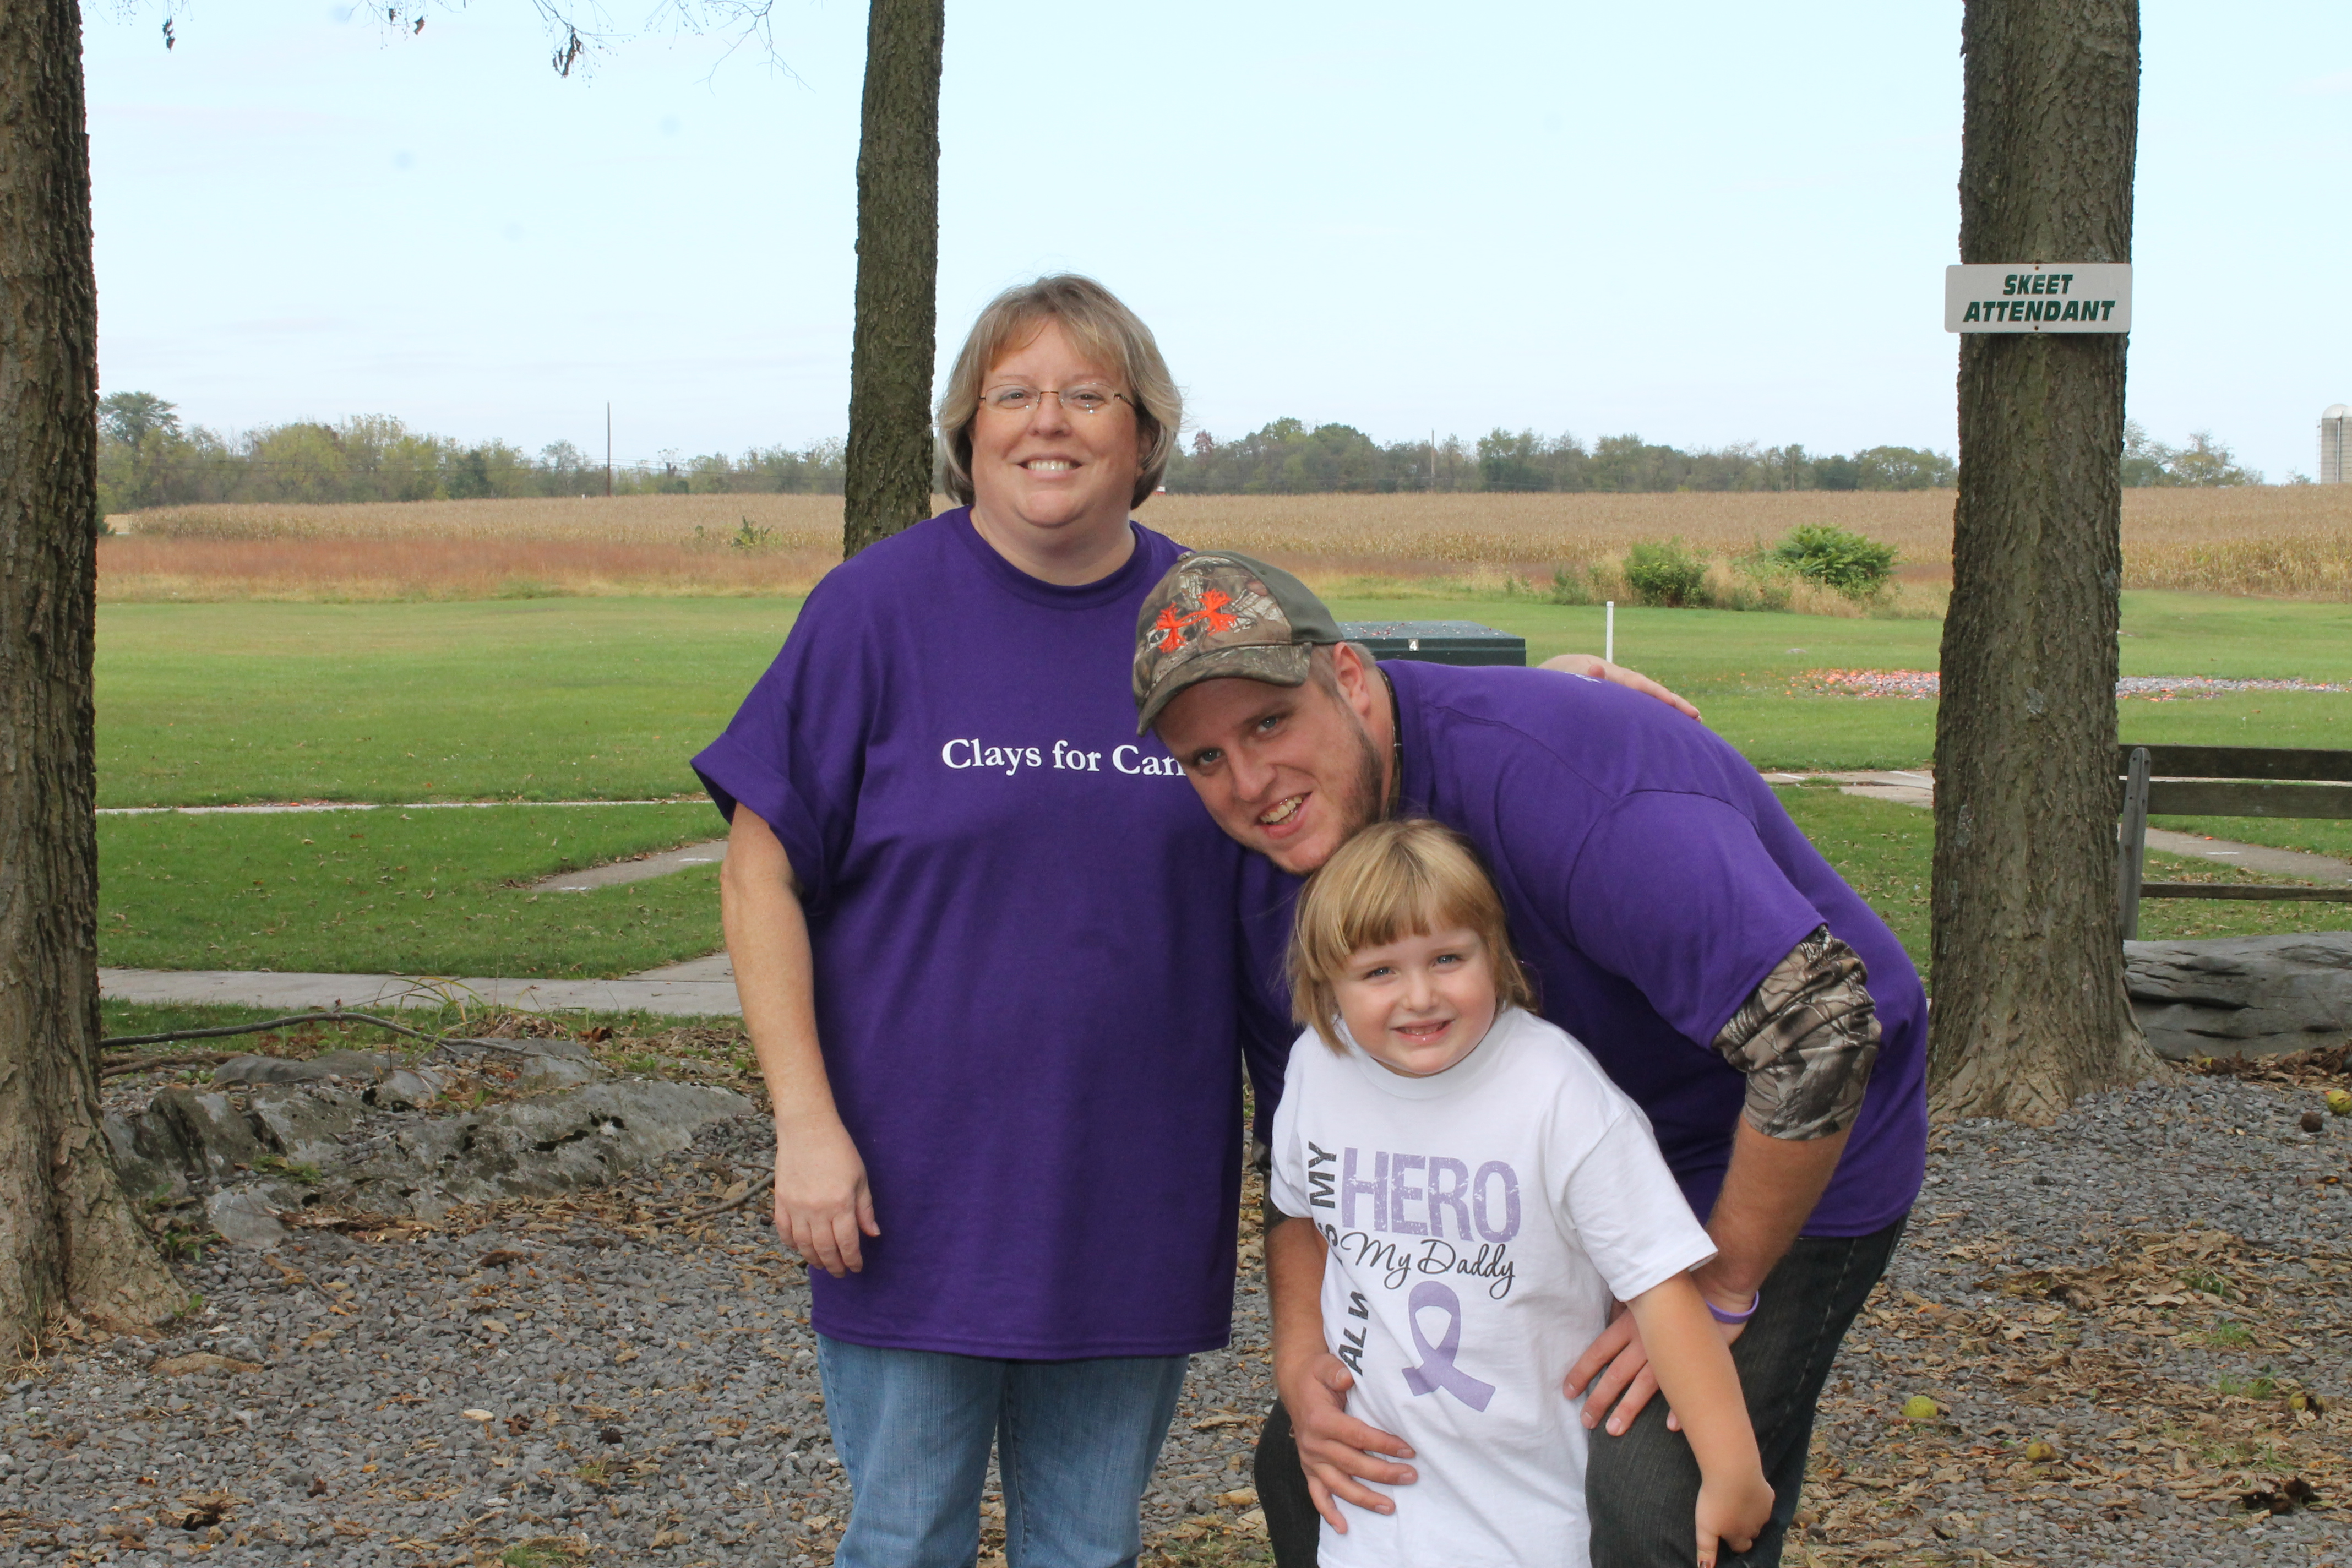 Clays for Cancer Participants